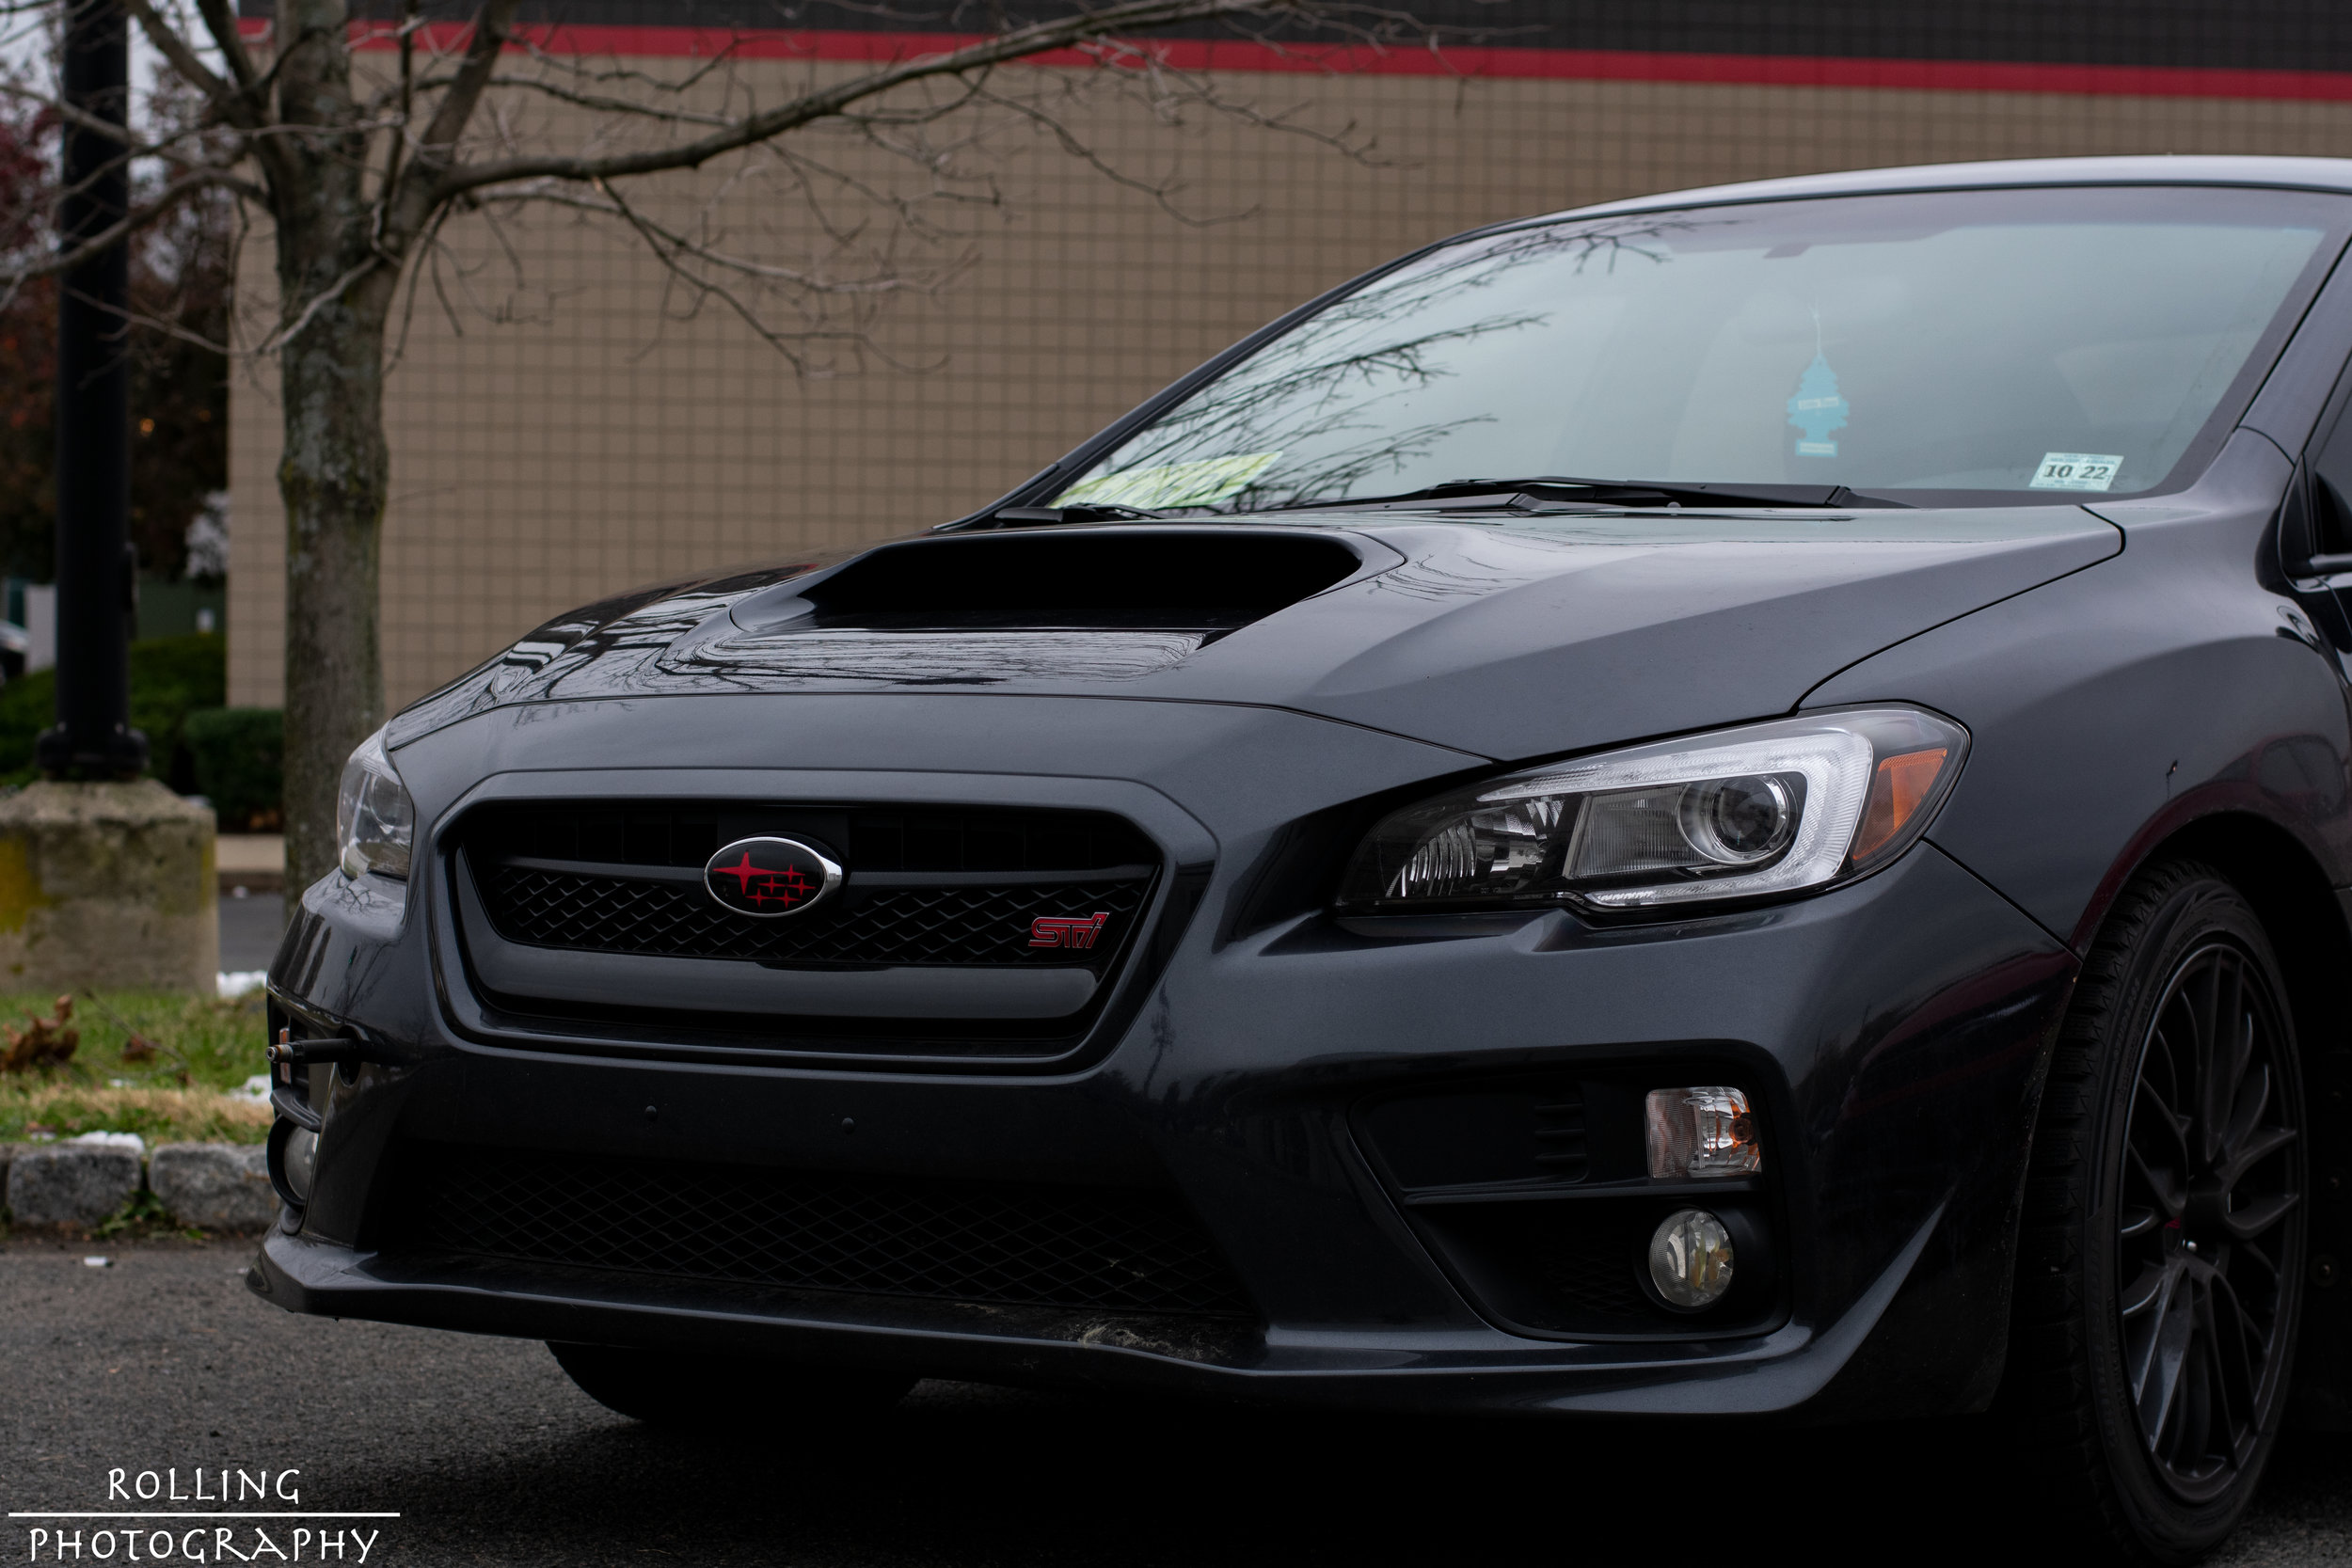 Subaru WRX STI (Grey)  ISO 200, 50mm, f / 5.0 Shutter Speed 1/640